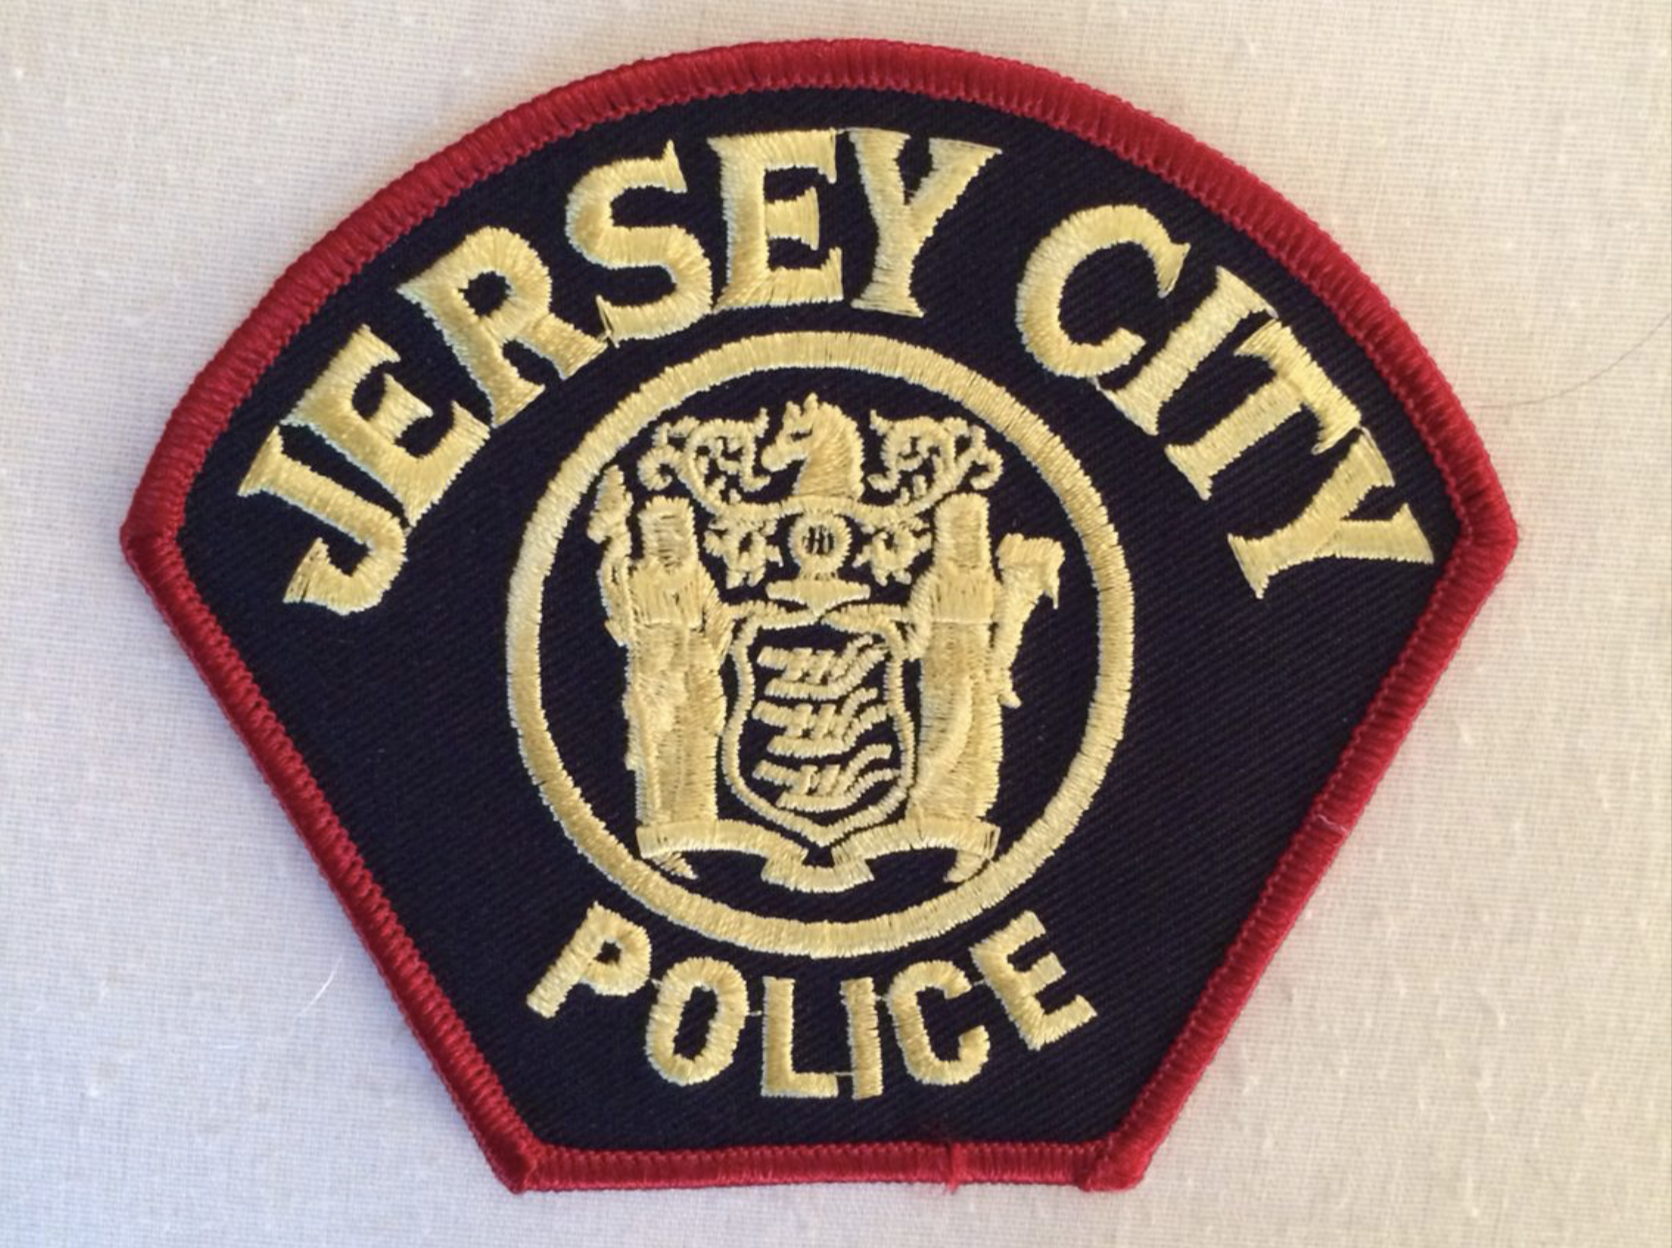 Jersey_City_Police.png